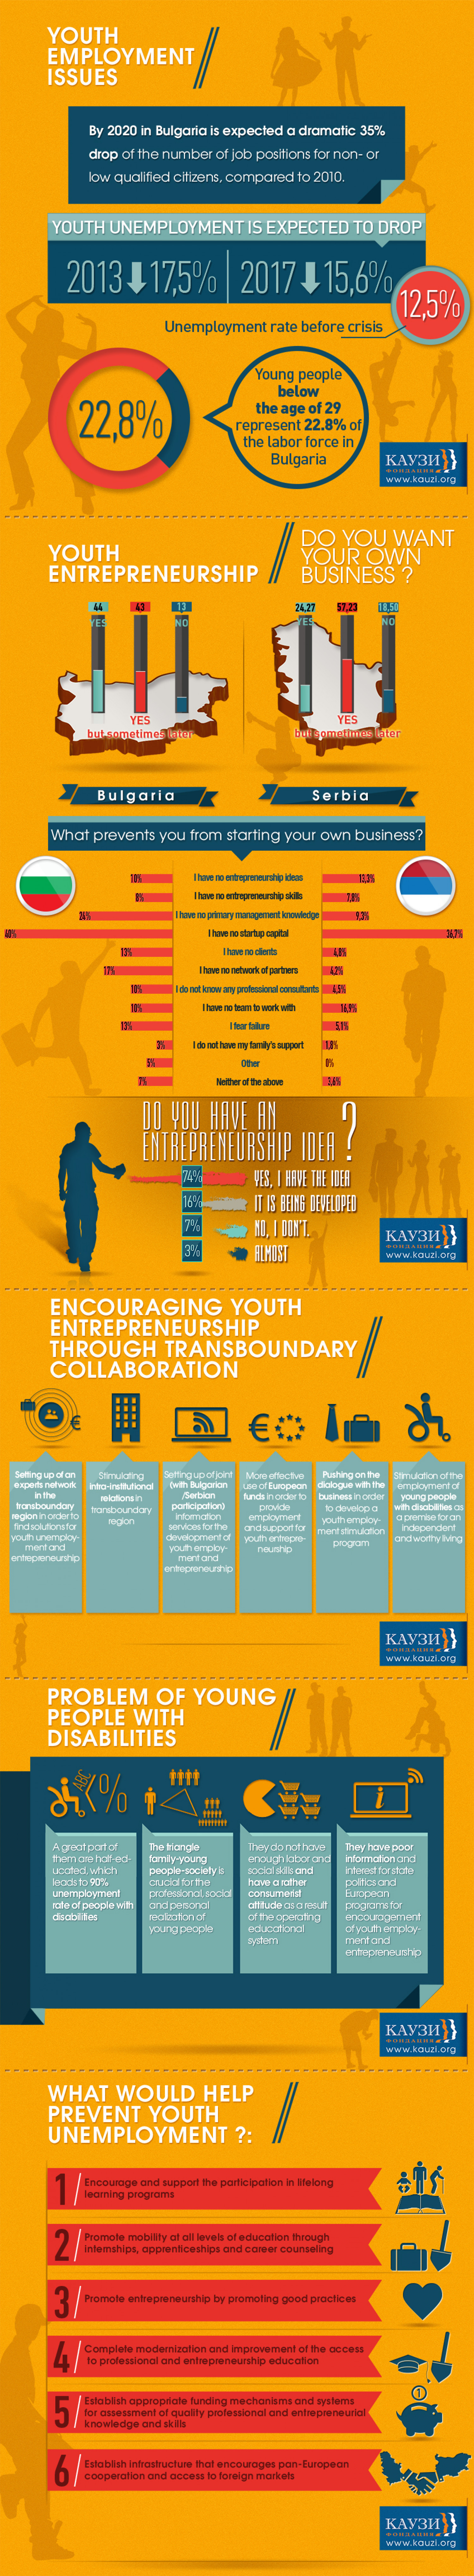 Youth Employement Issues Infographic